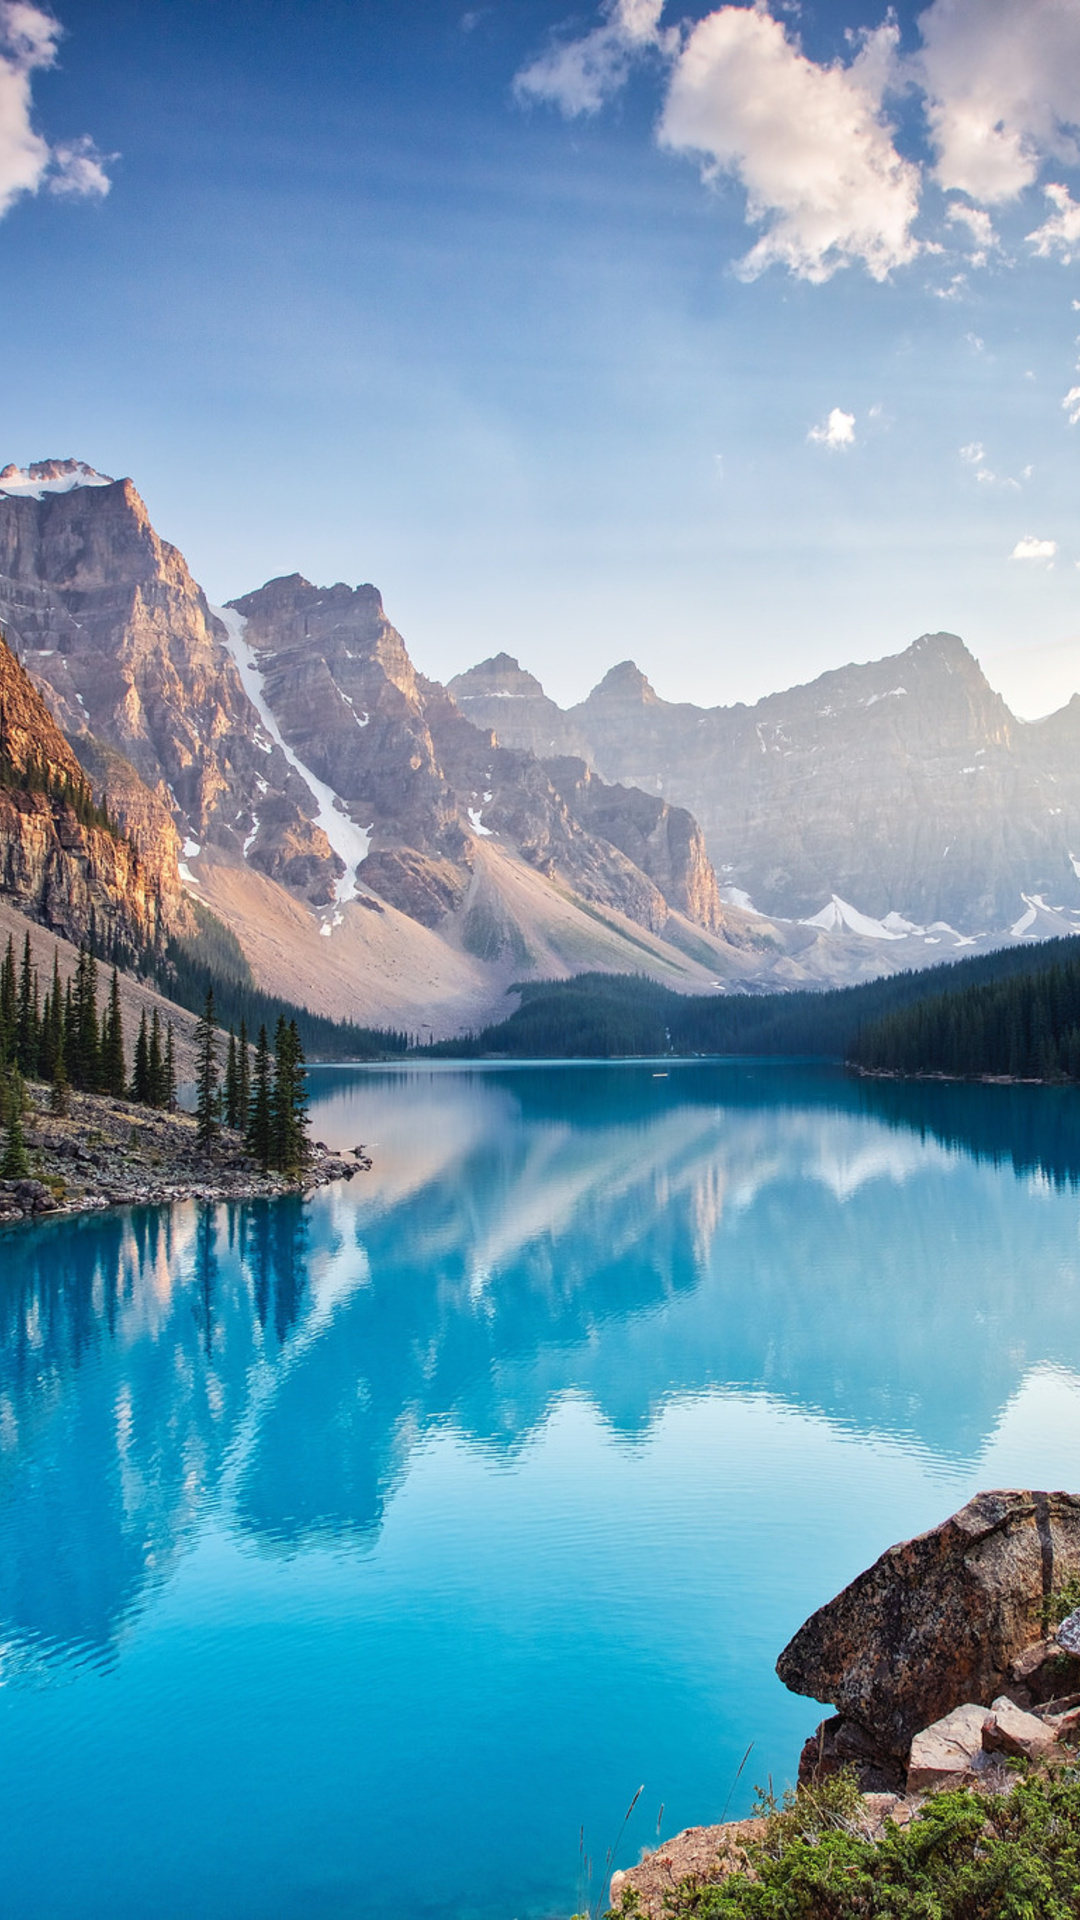 1080x1920 moraine lake south channel iphone 7 6s 6 plus - Nature wallpaper 4k iphone ...